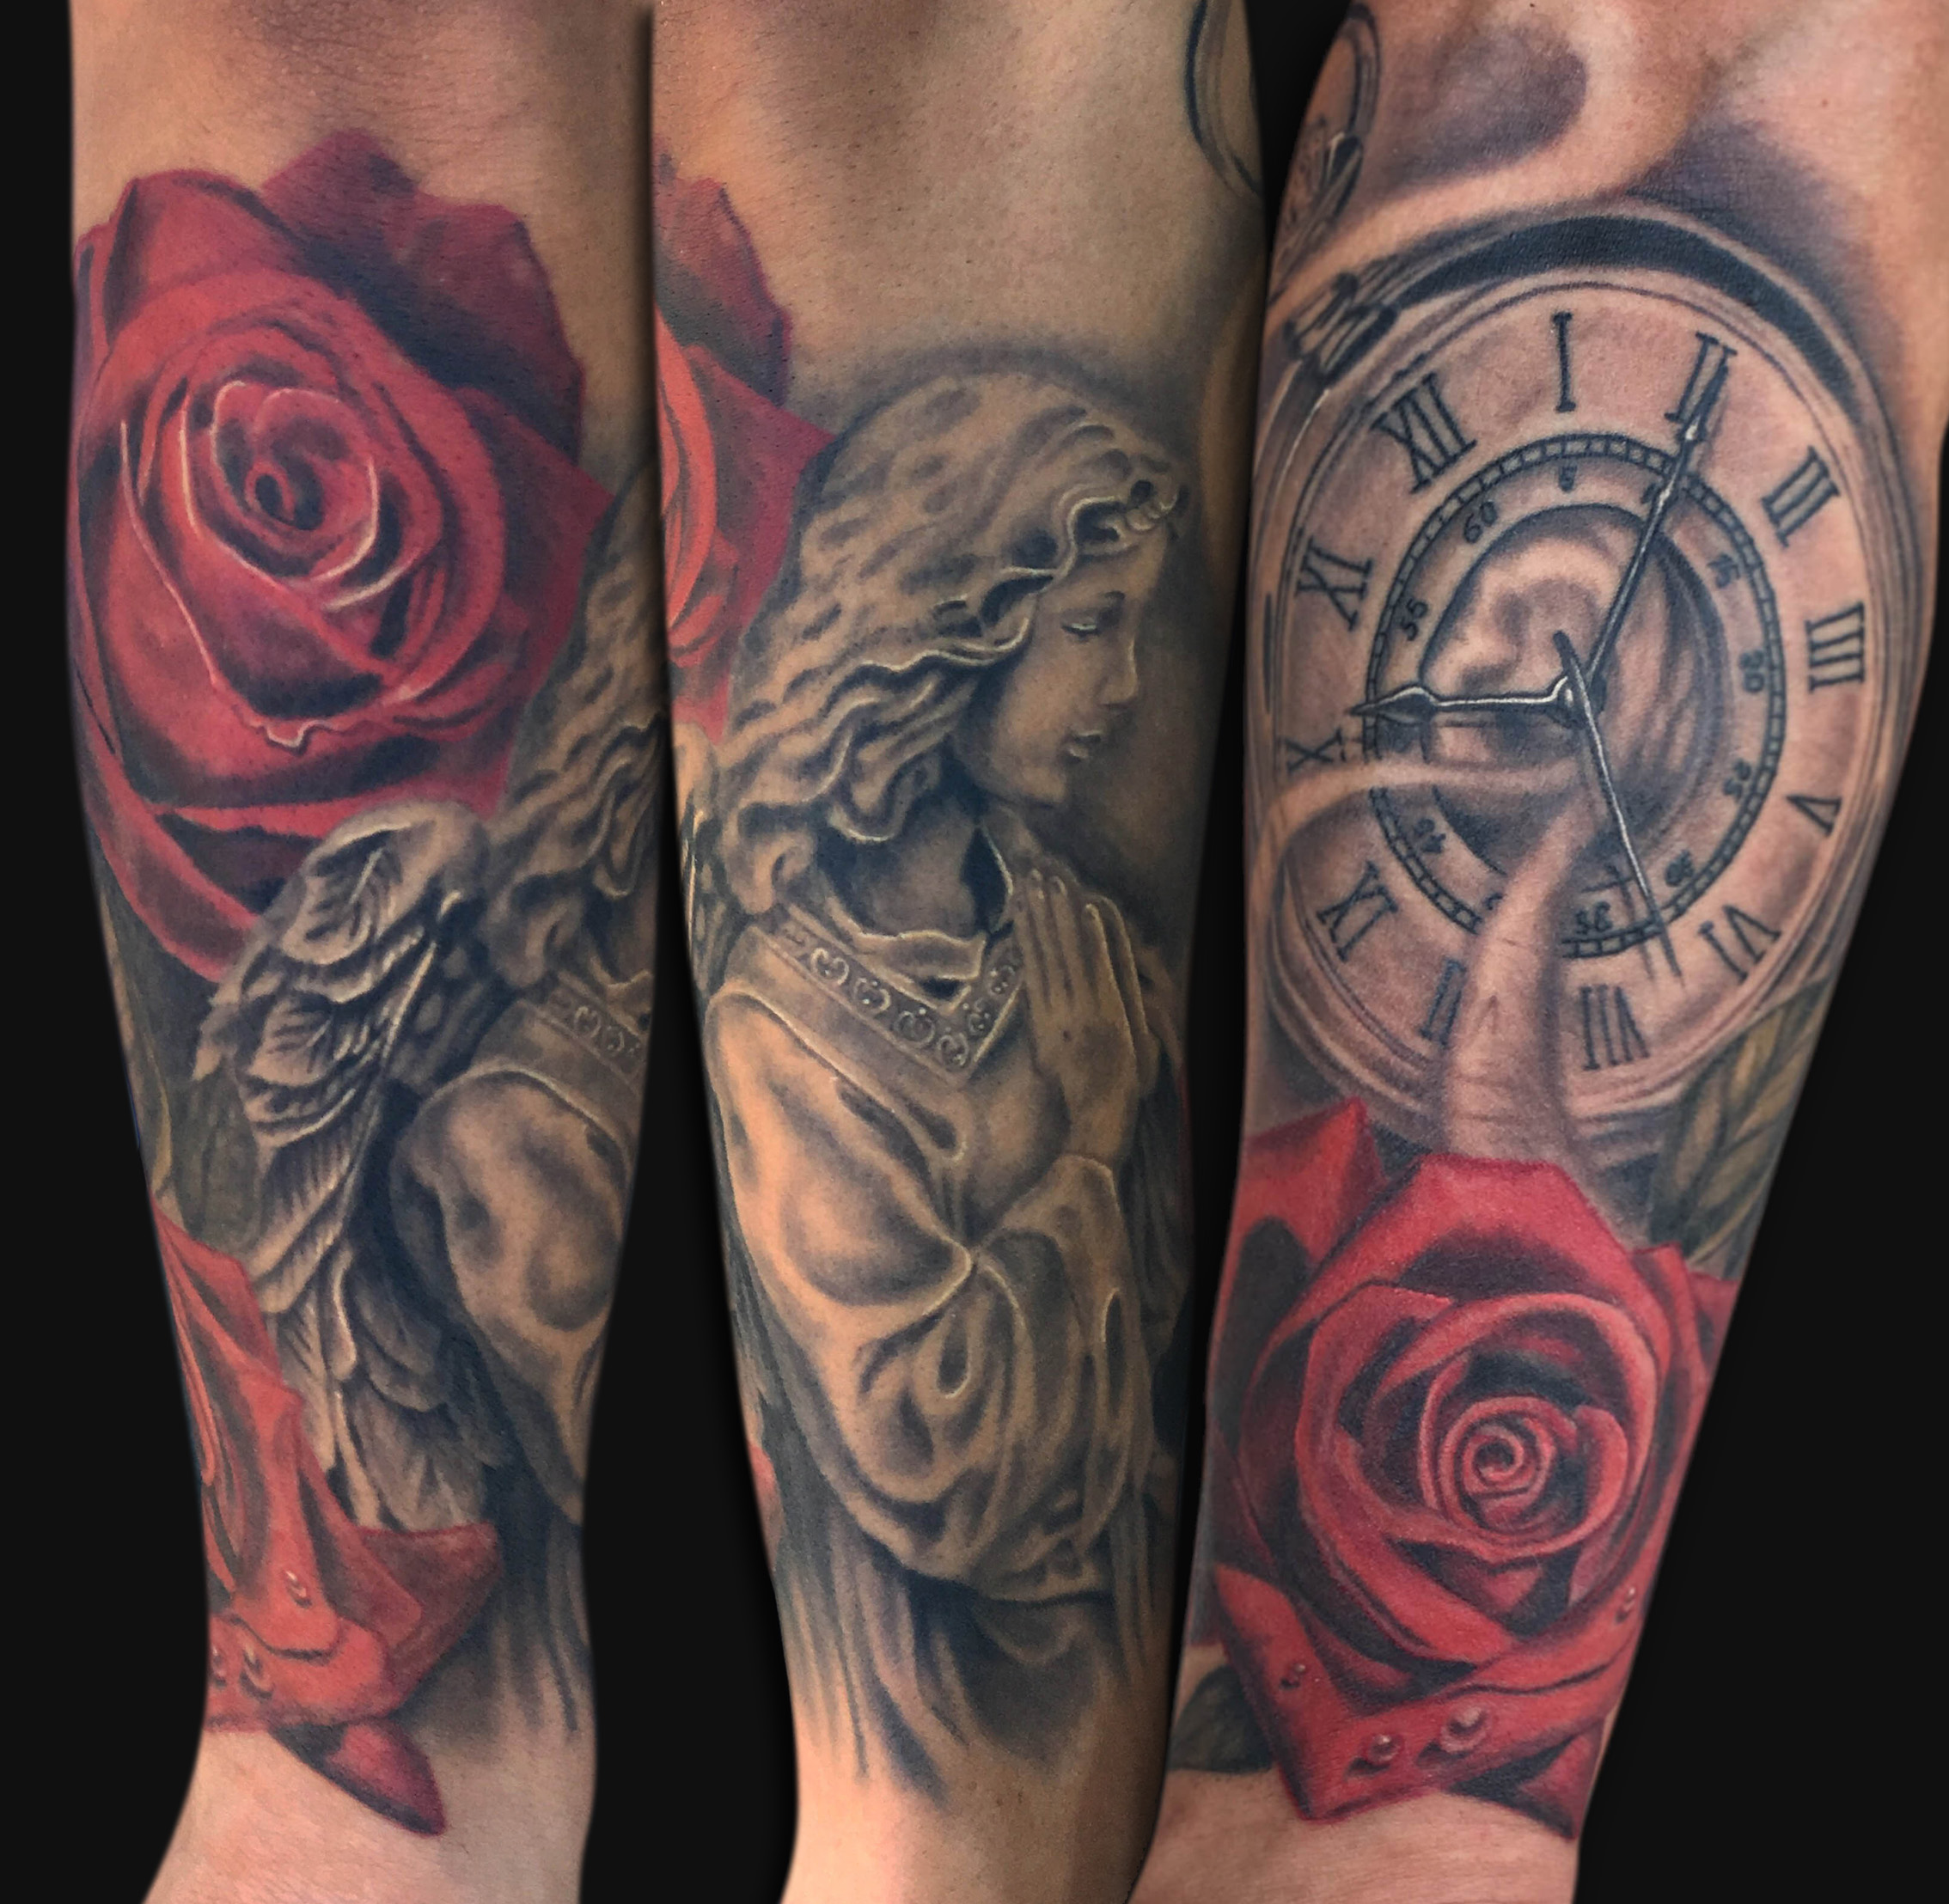 Clock forearm black rose sleeve tattoo - Clock Forearm Black Rose Sleeve Tattoo 1